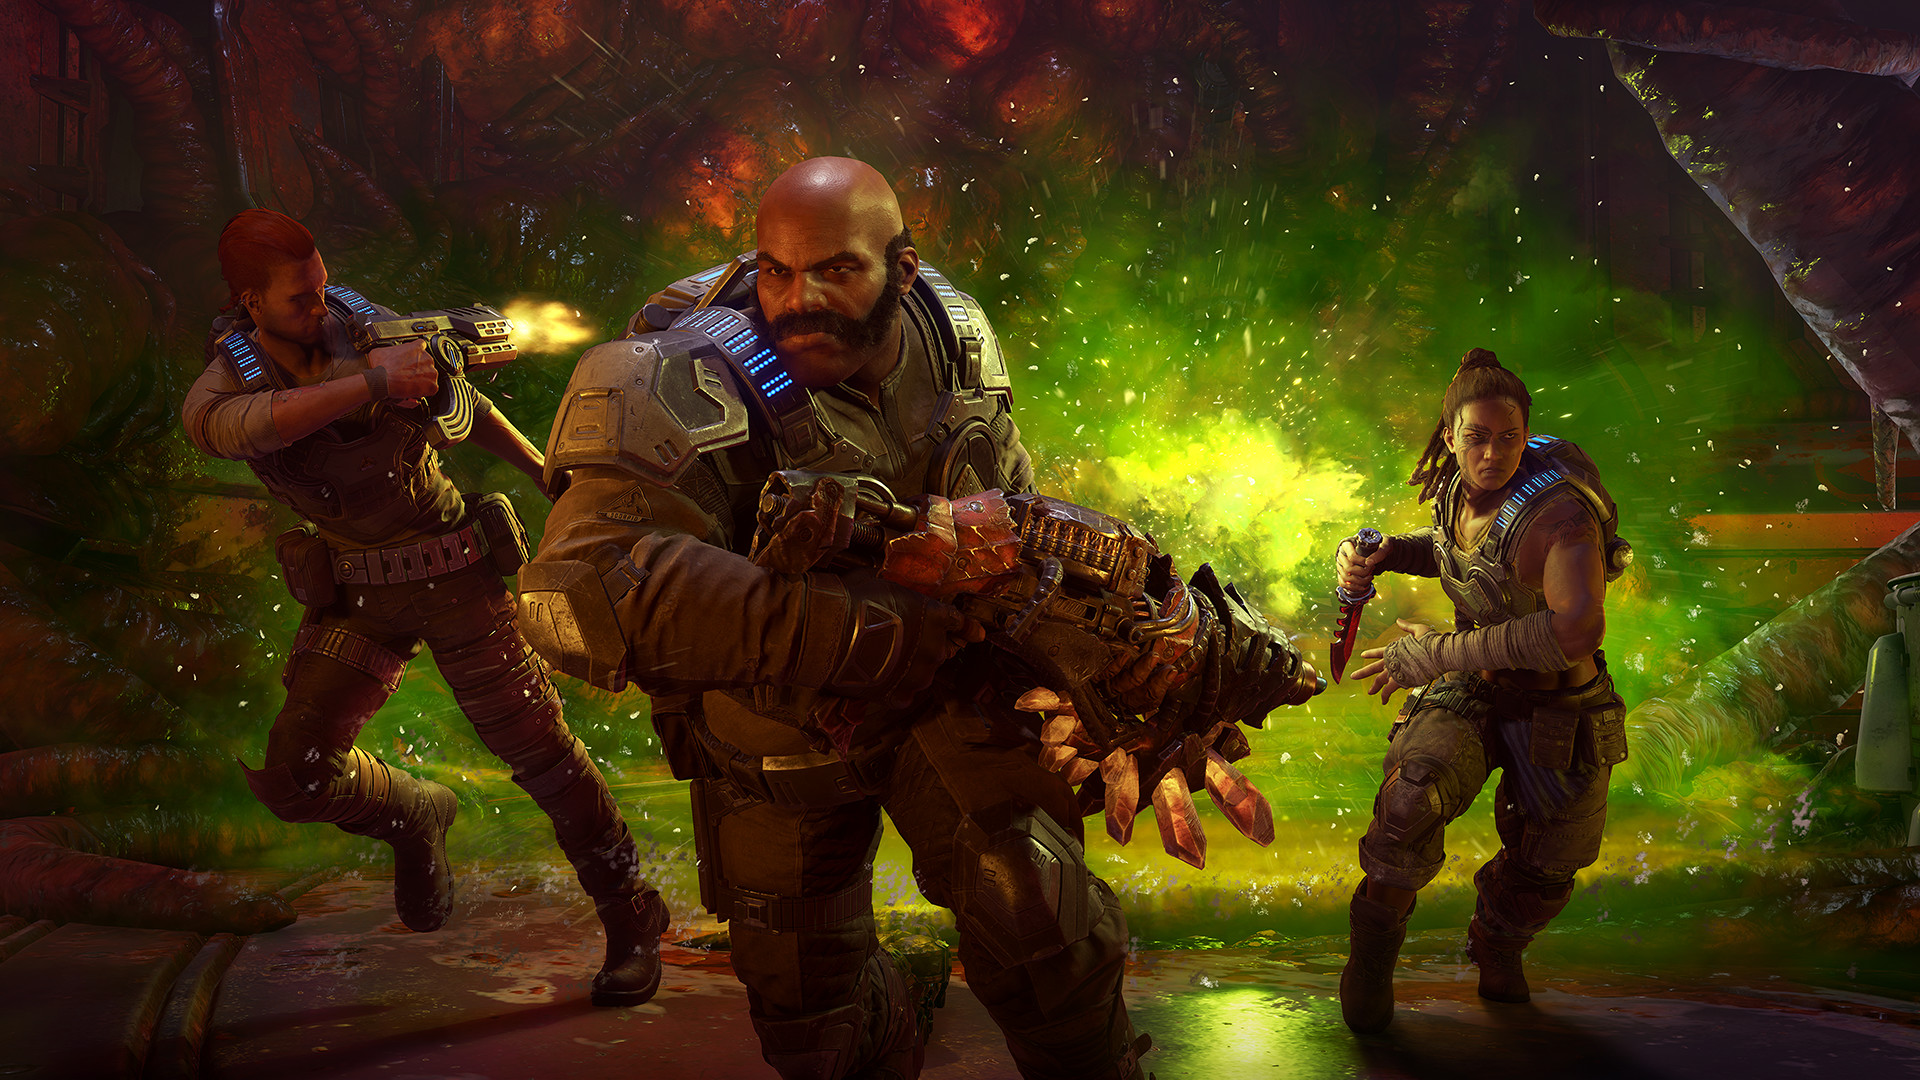 Gears 5 PC System Requirements Shared Ahead of Technical Tests